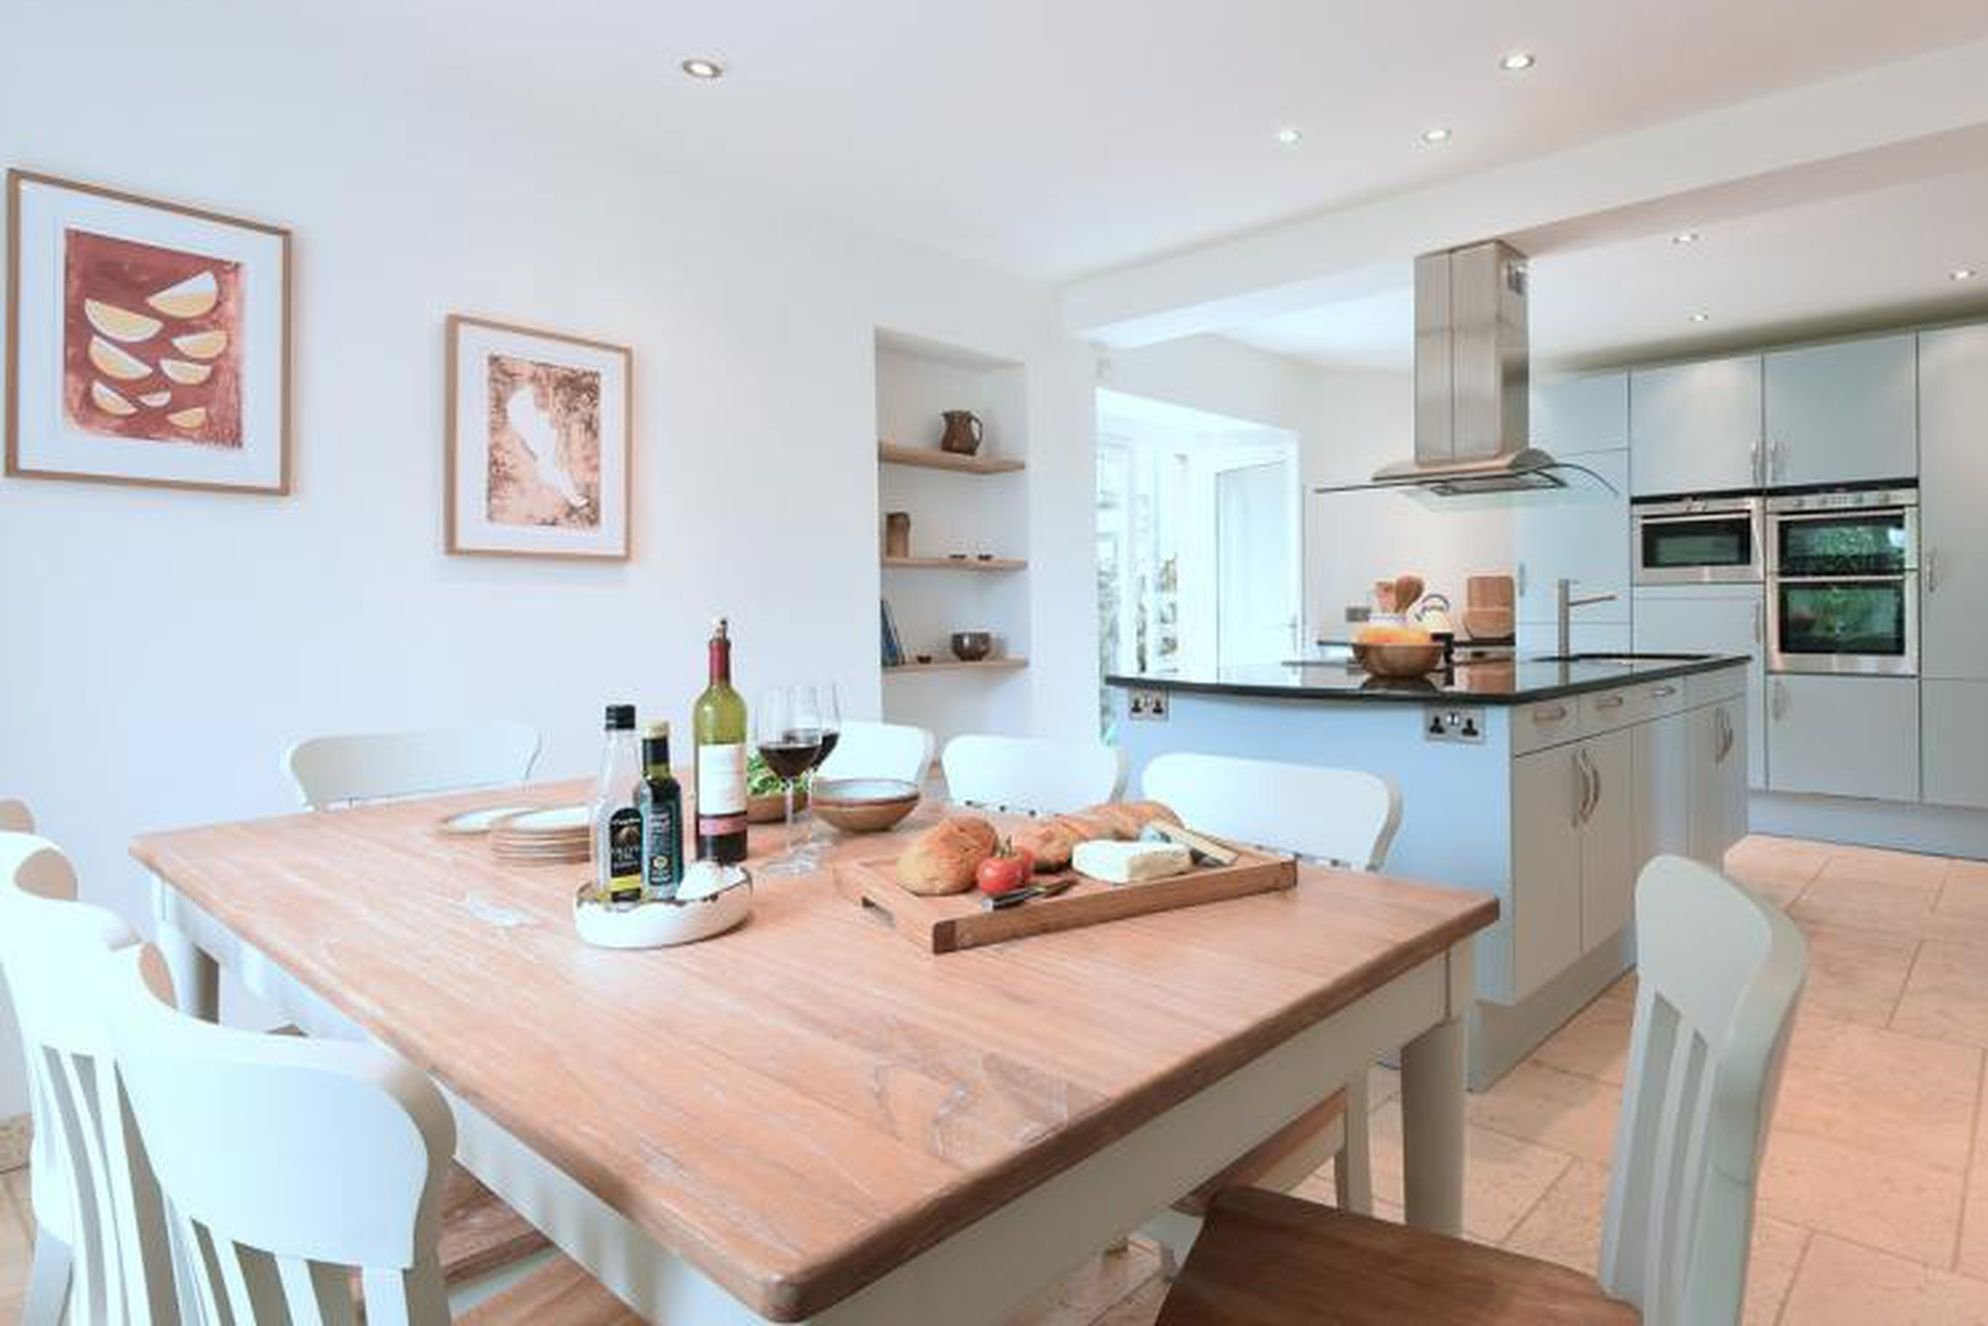 Open plan modern kitchen and dining area at Chy an Carrack in Cornwall